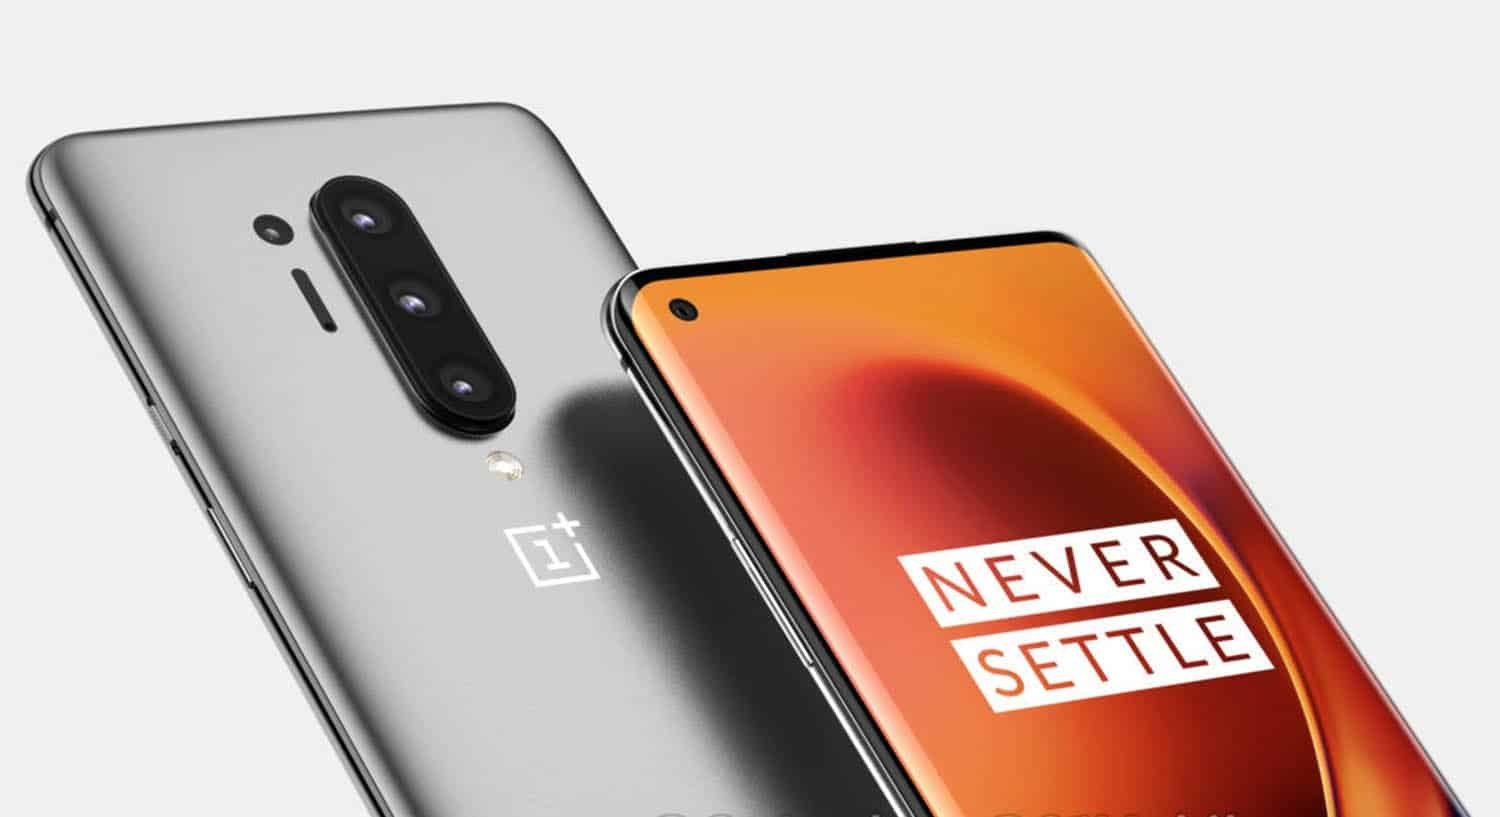 This could be our first live look at the OnePlus 8 Pro